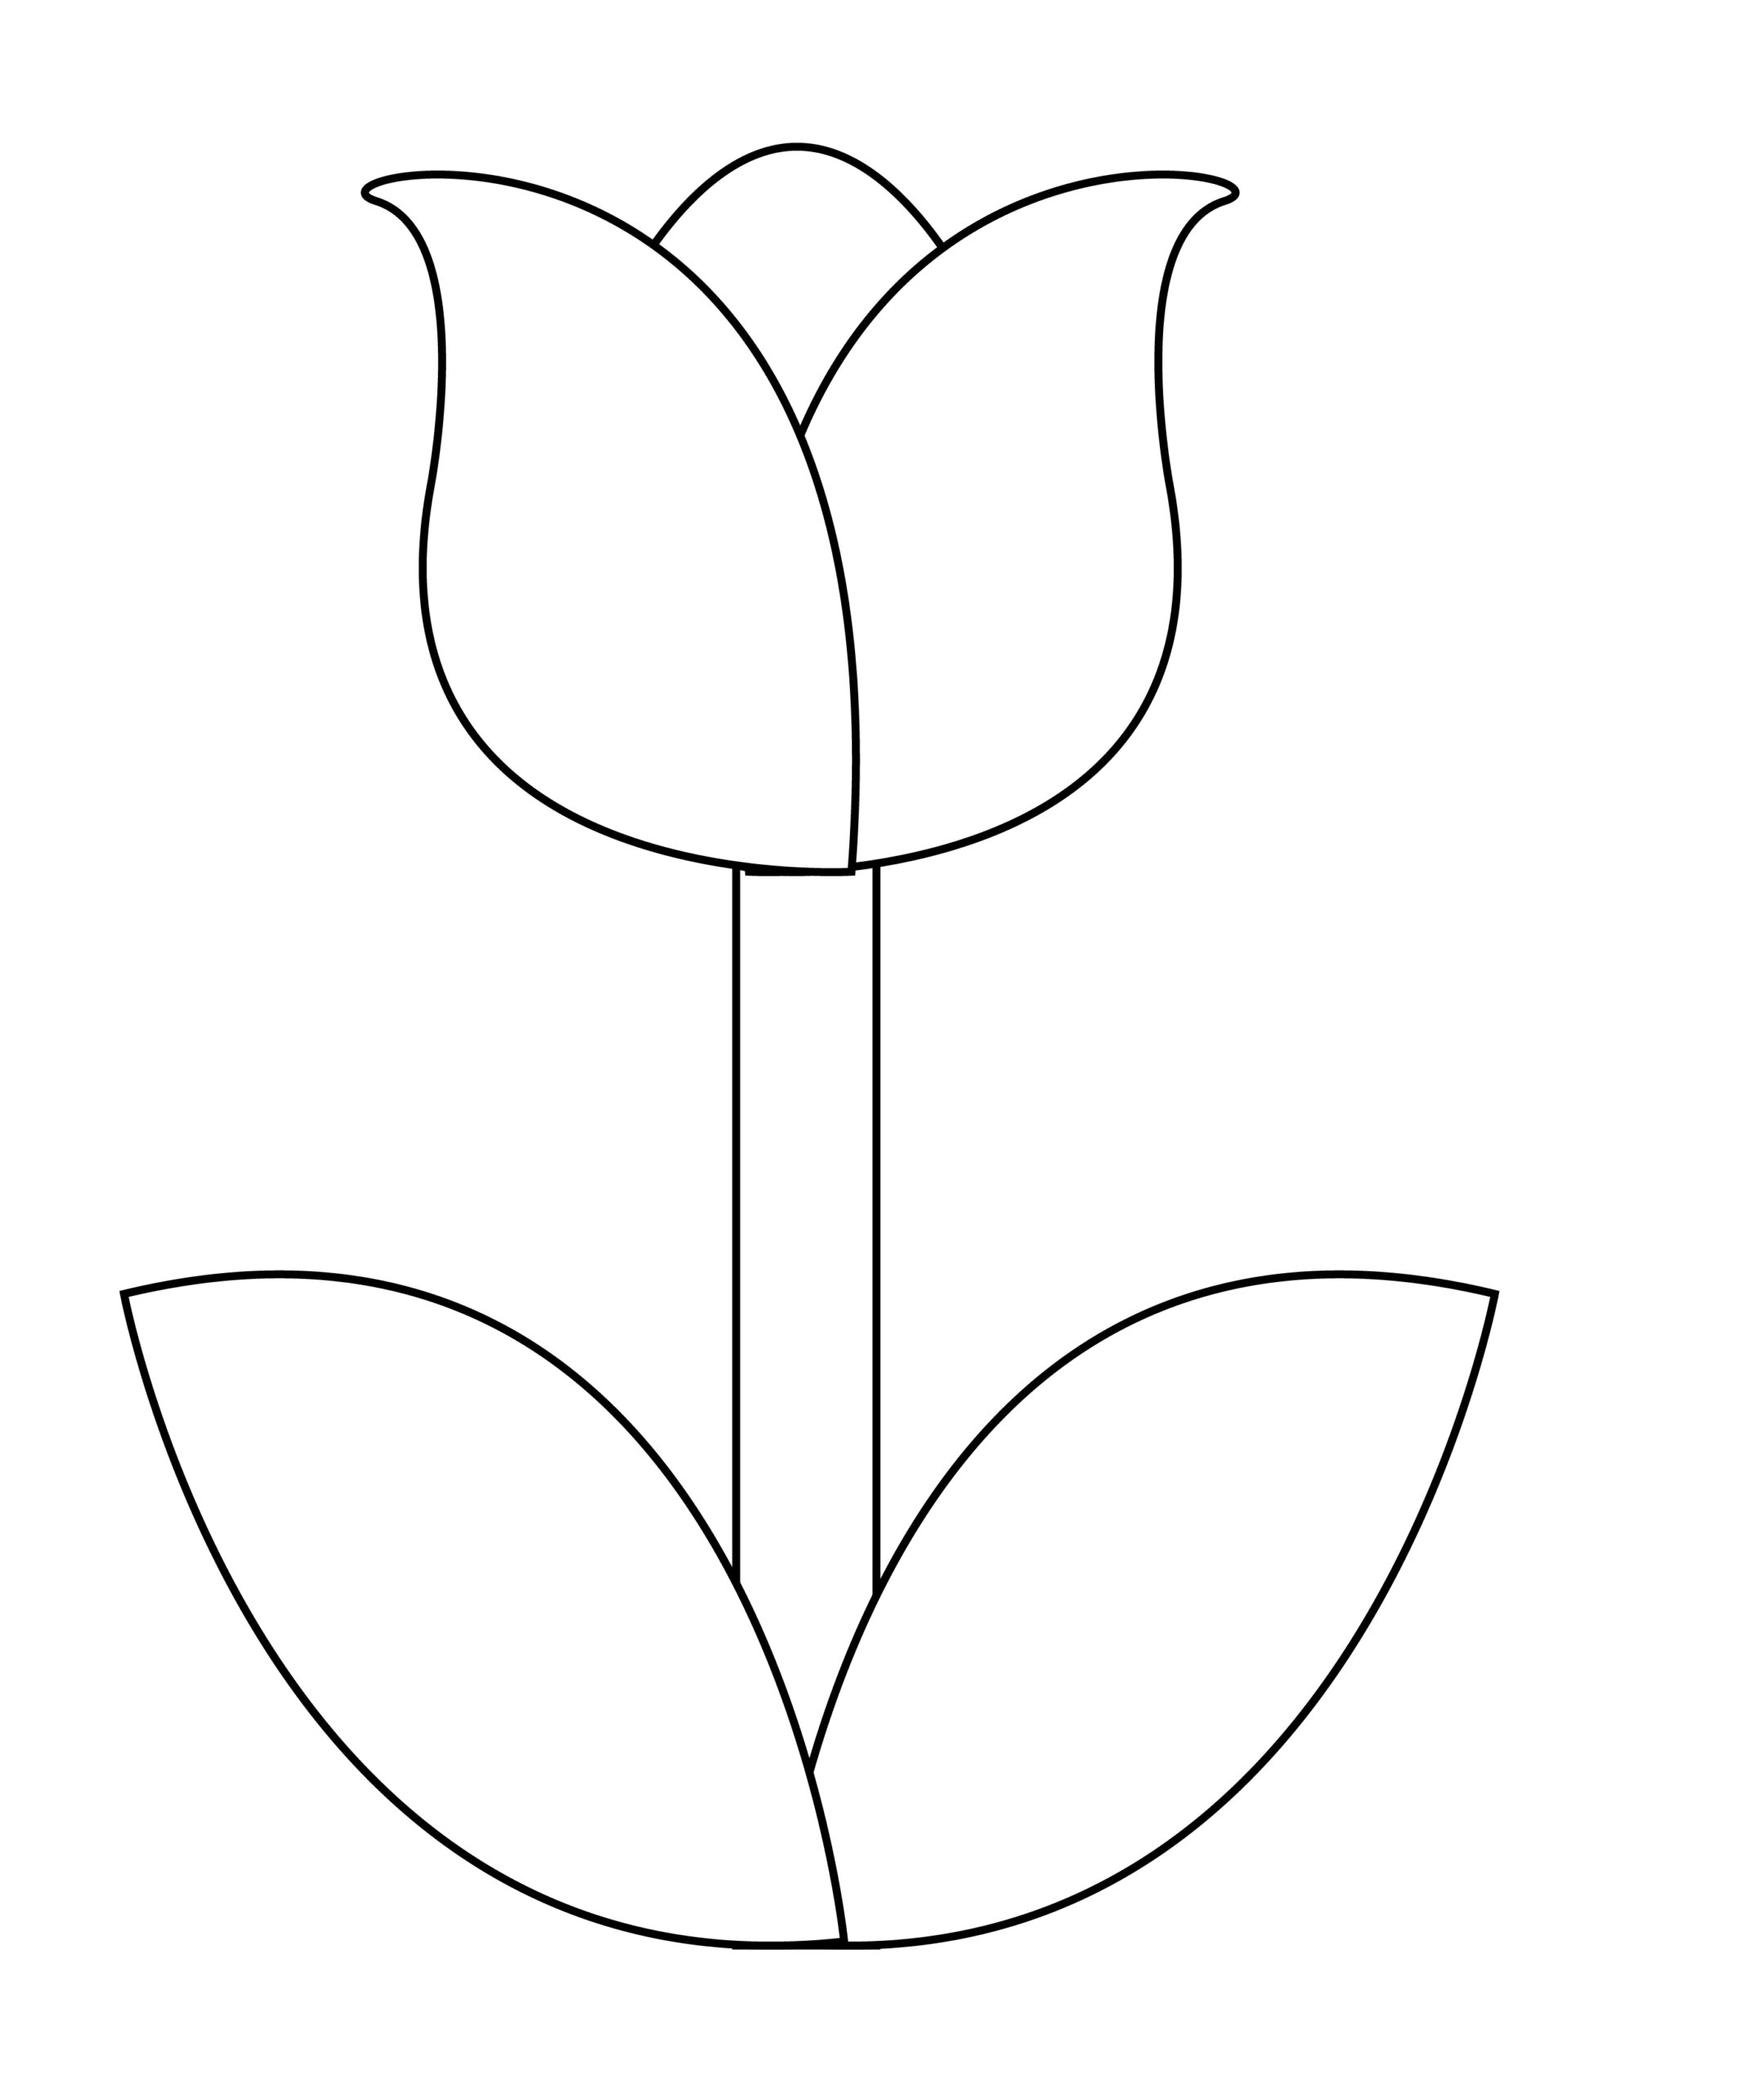 Printable tulip template for summer template crafts for kids, preschoolers and toddlers